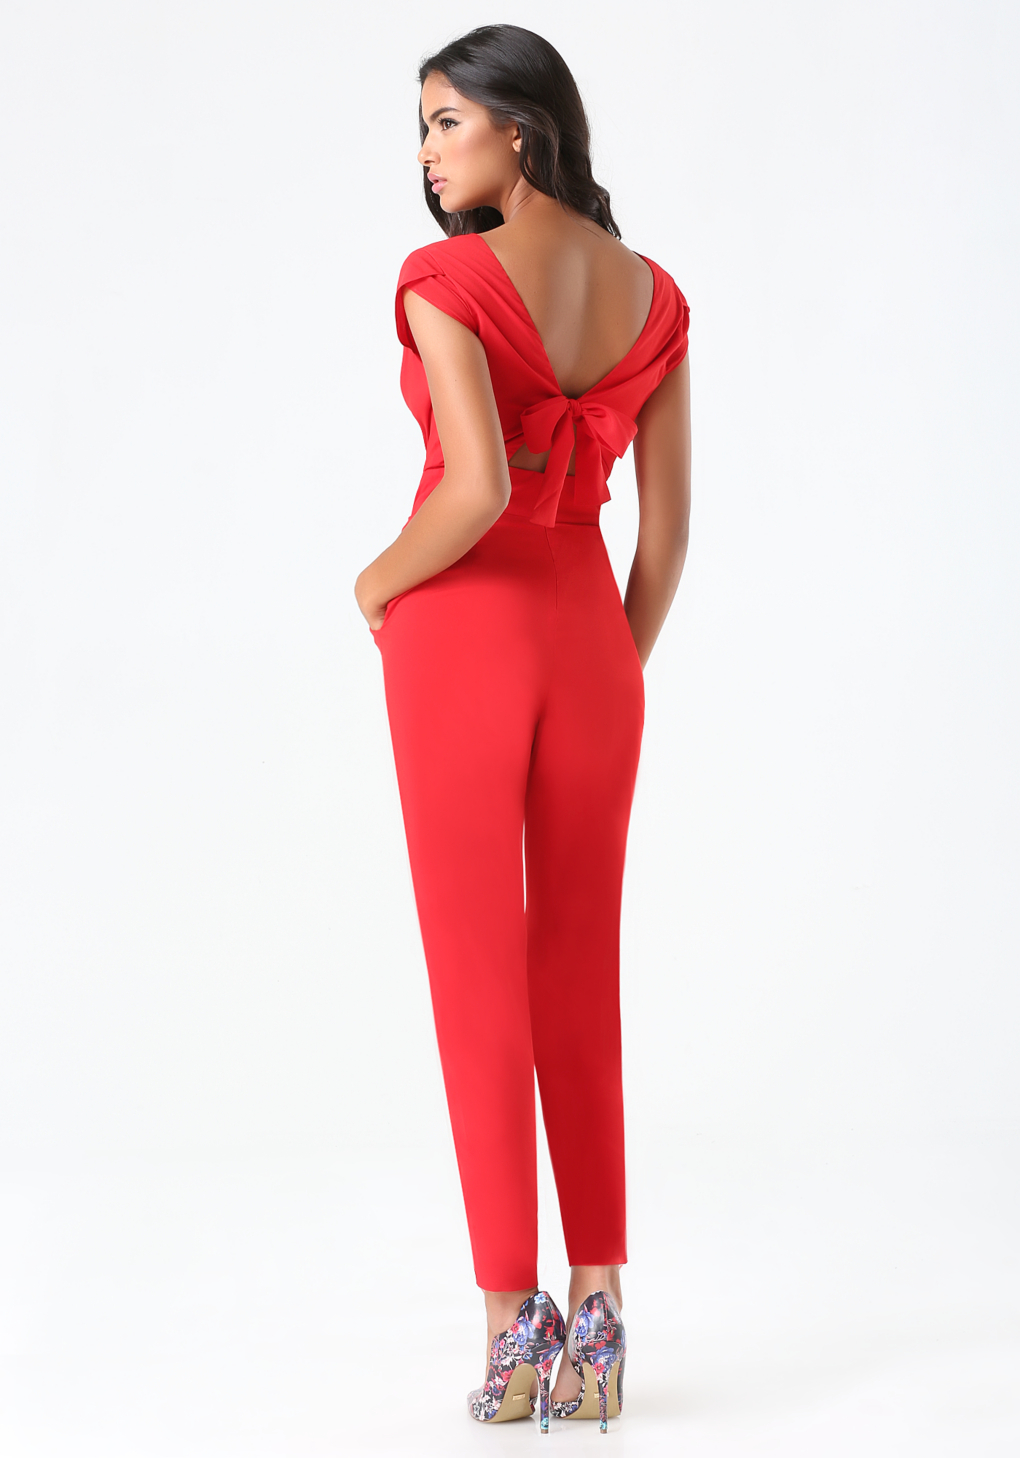 Bebe Petite Emma Bow Jumpsuit in Red | Lyst